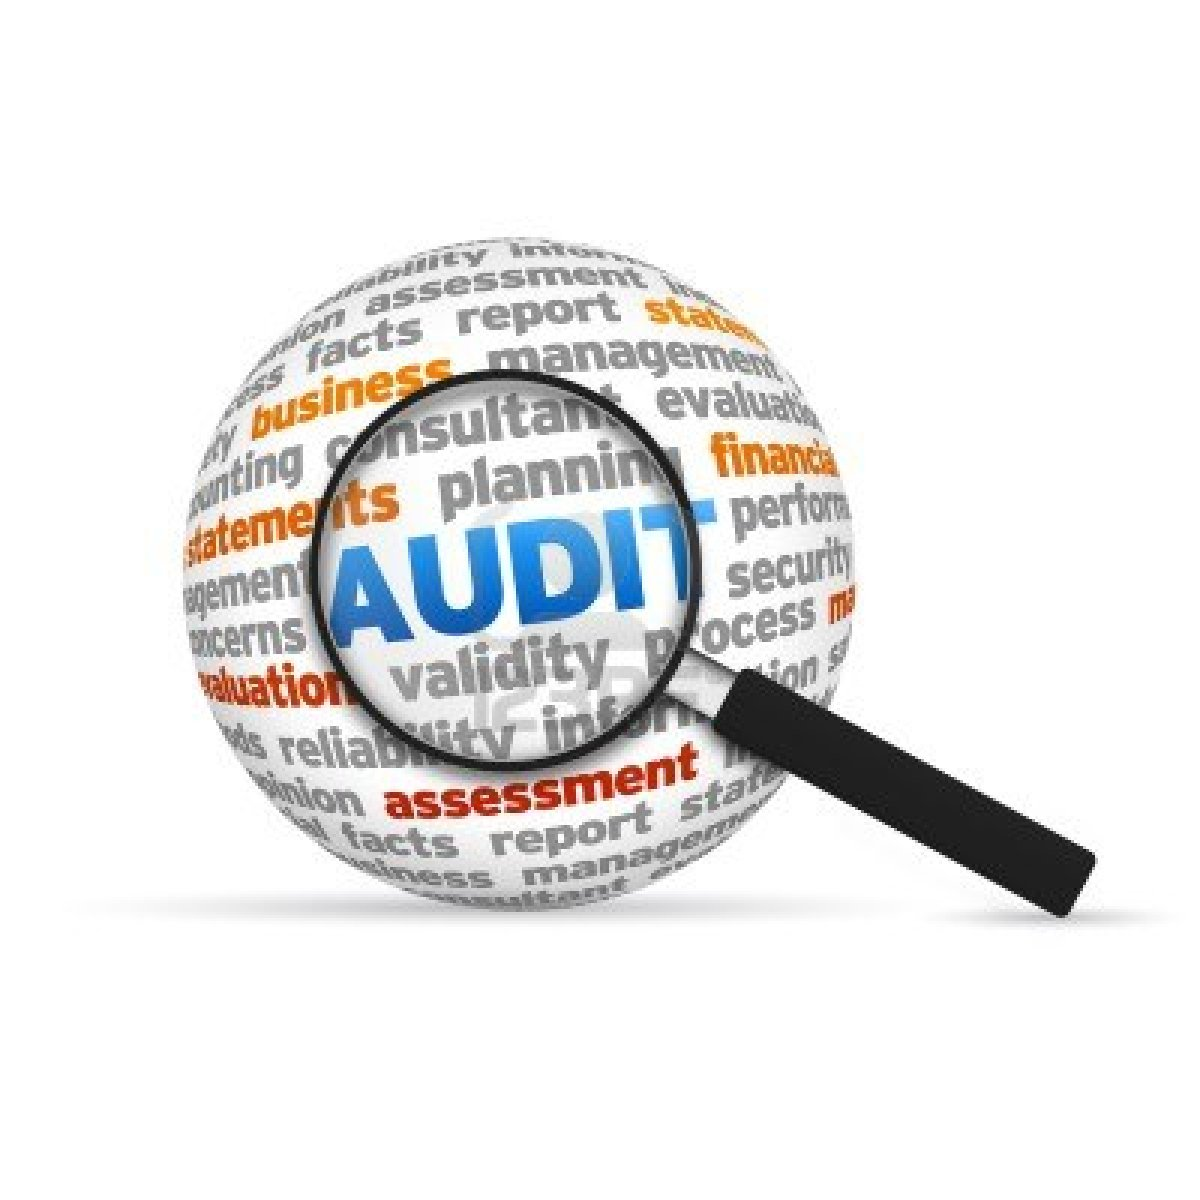 Pmp Audit Process A Step By Step Guide And Faqs Updated For